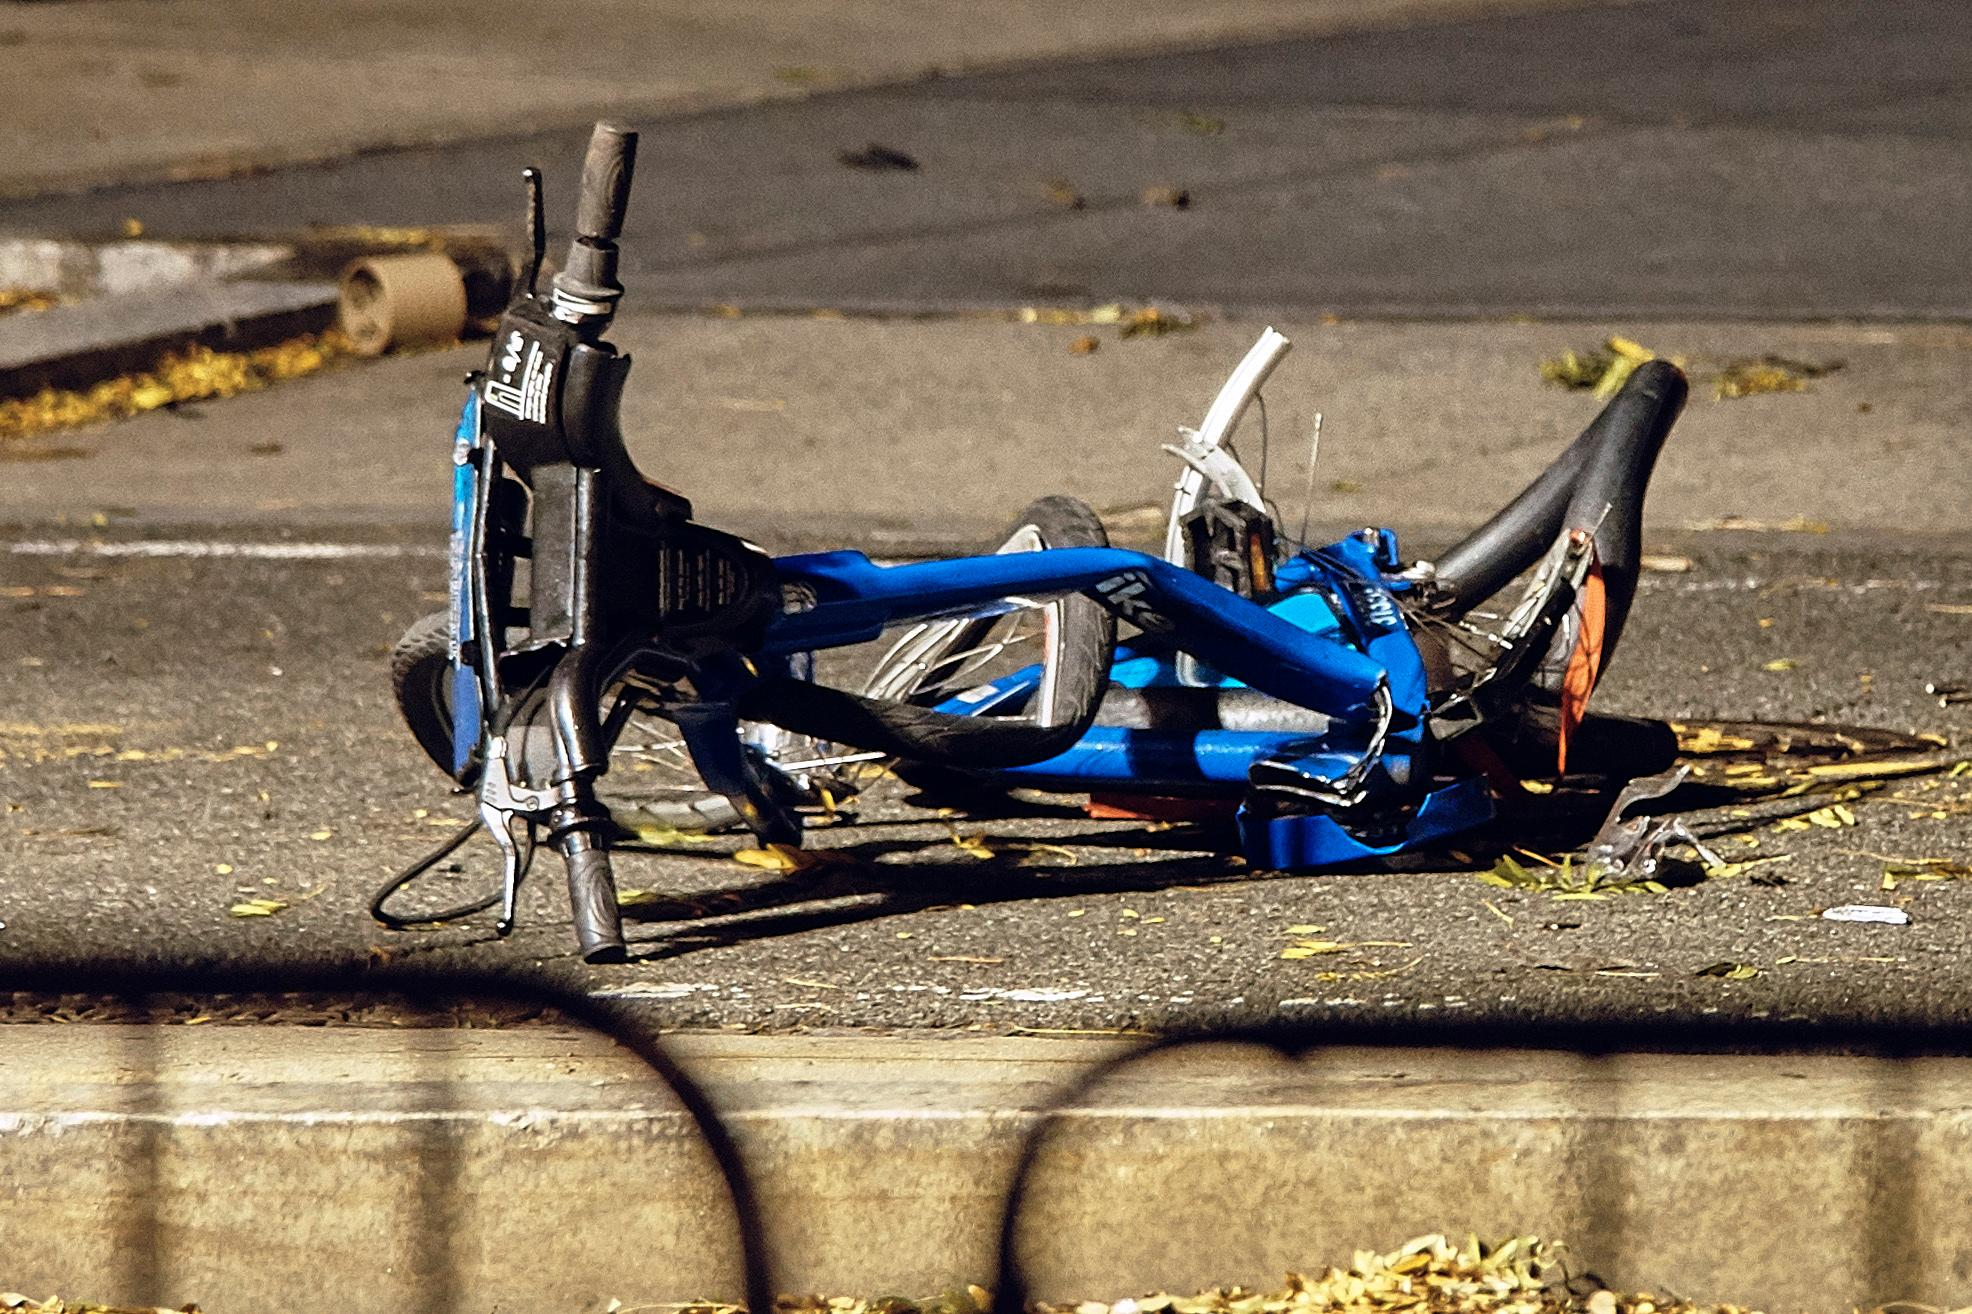 A bicycle lies on a bike path at the crime scene where a motorist earlier Tuesday drove onto the path near the World Trade Center memorial, striking and killing several people, Wednesday, Nov. 1, 2017, in New York. (AP Photo/Andres Kudacki)